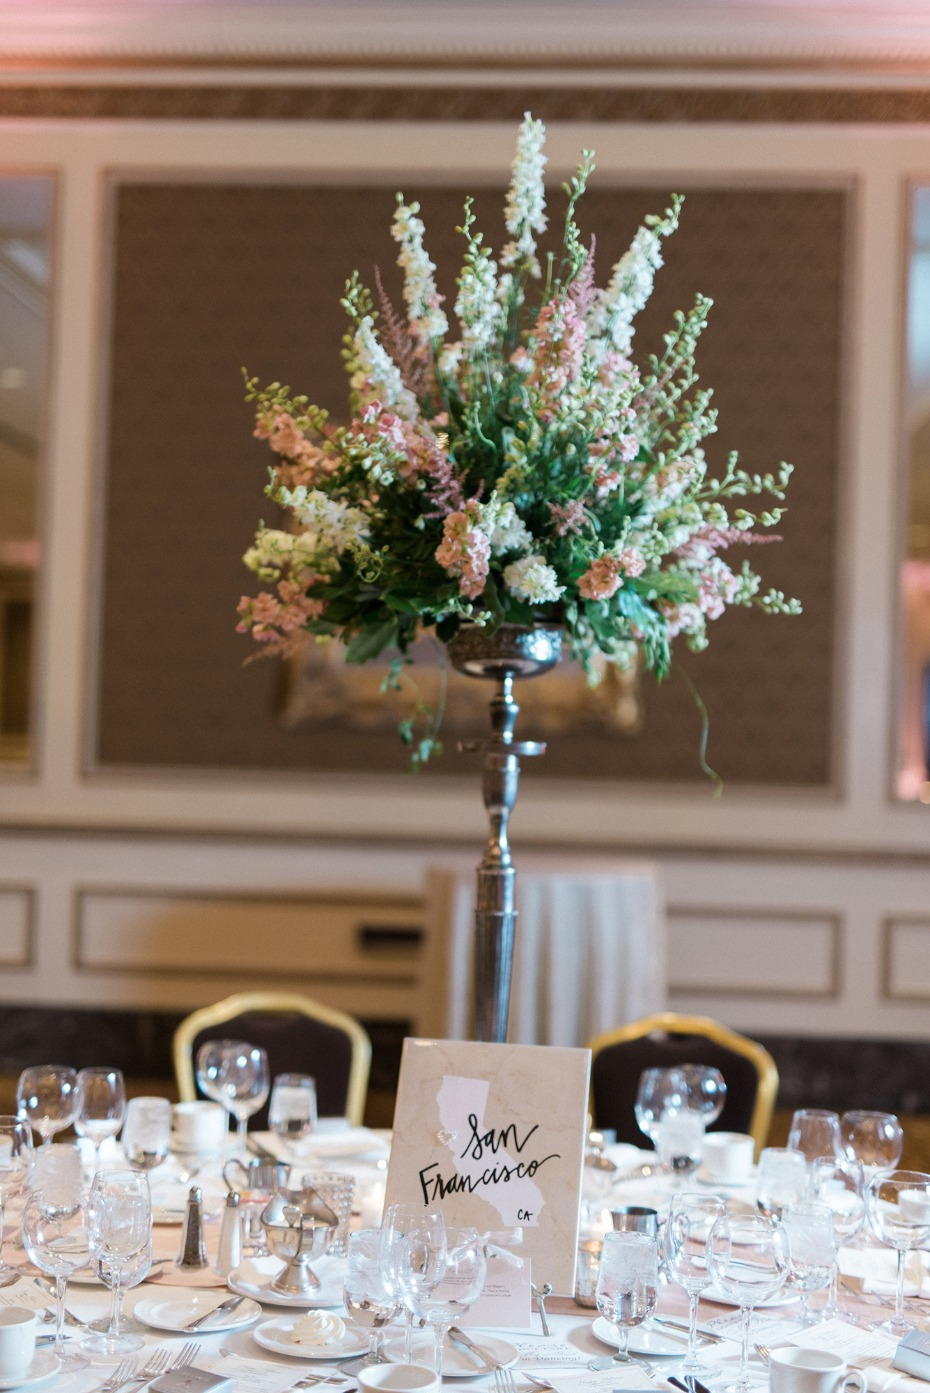 Elegant tall centerpiece